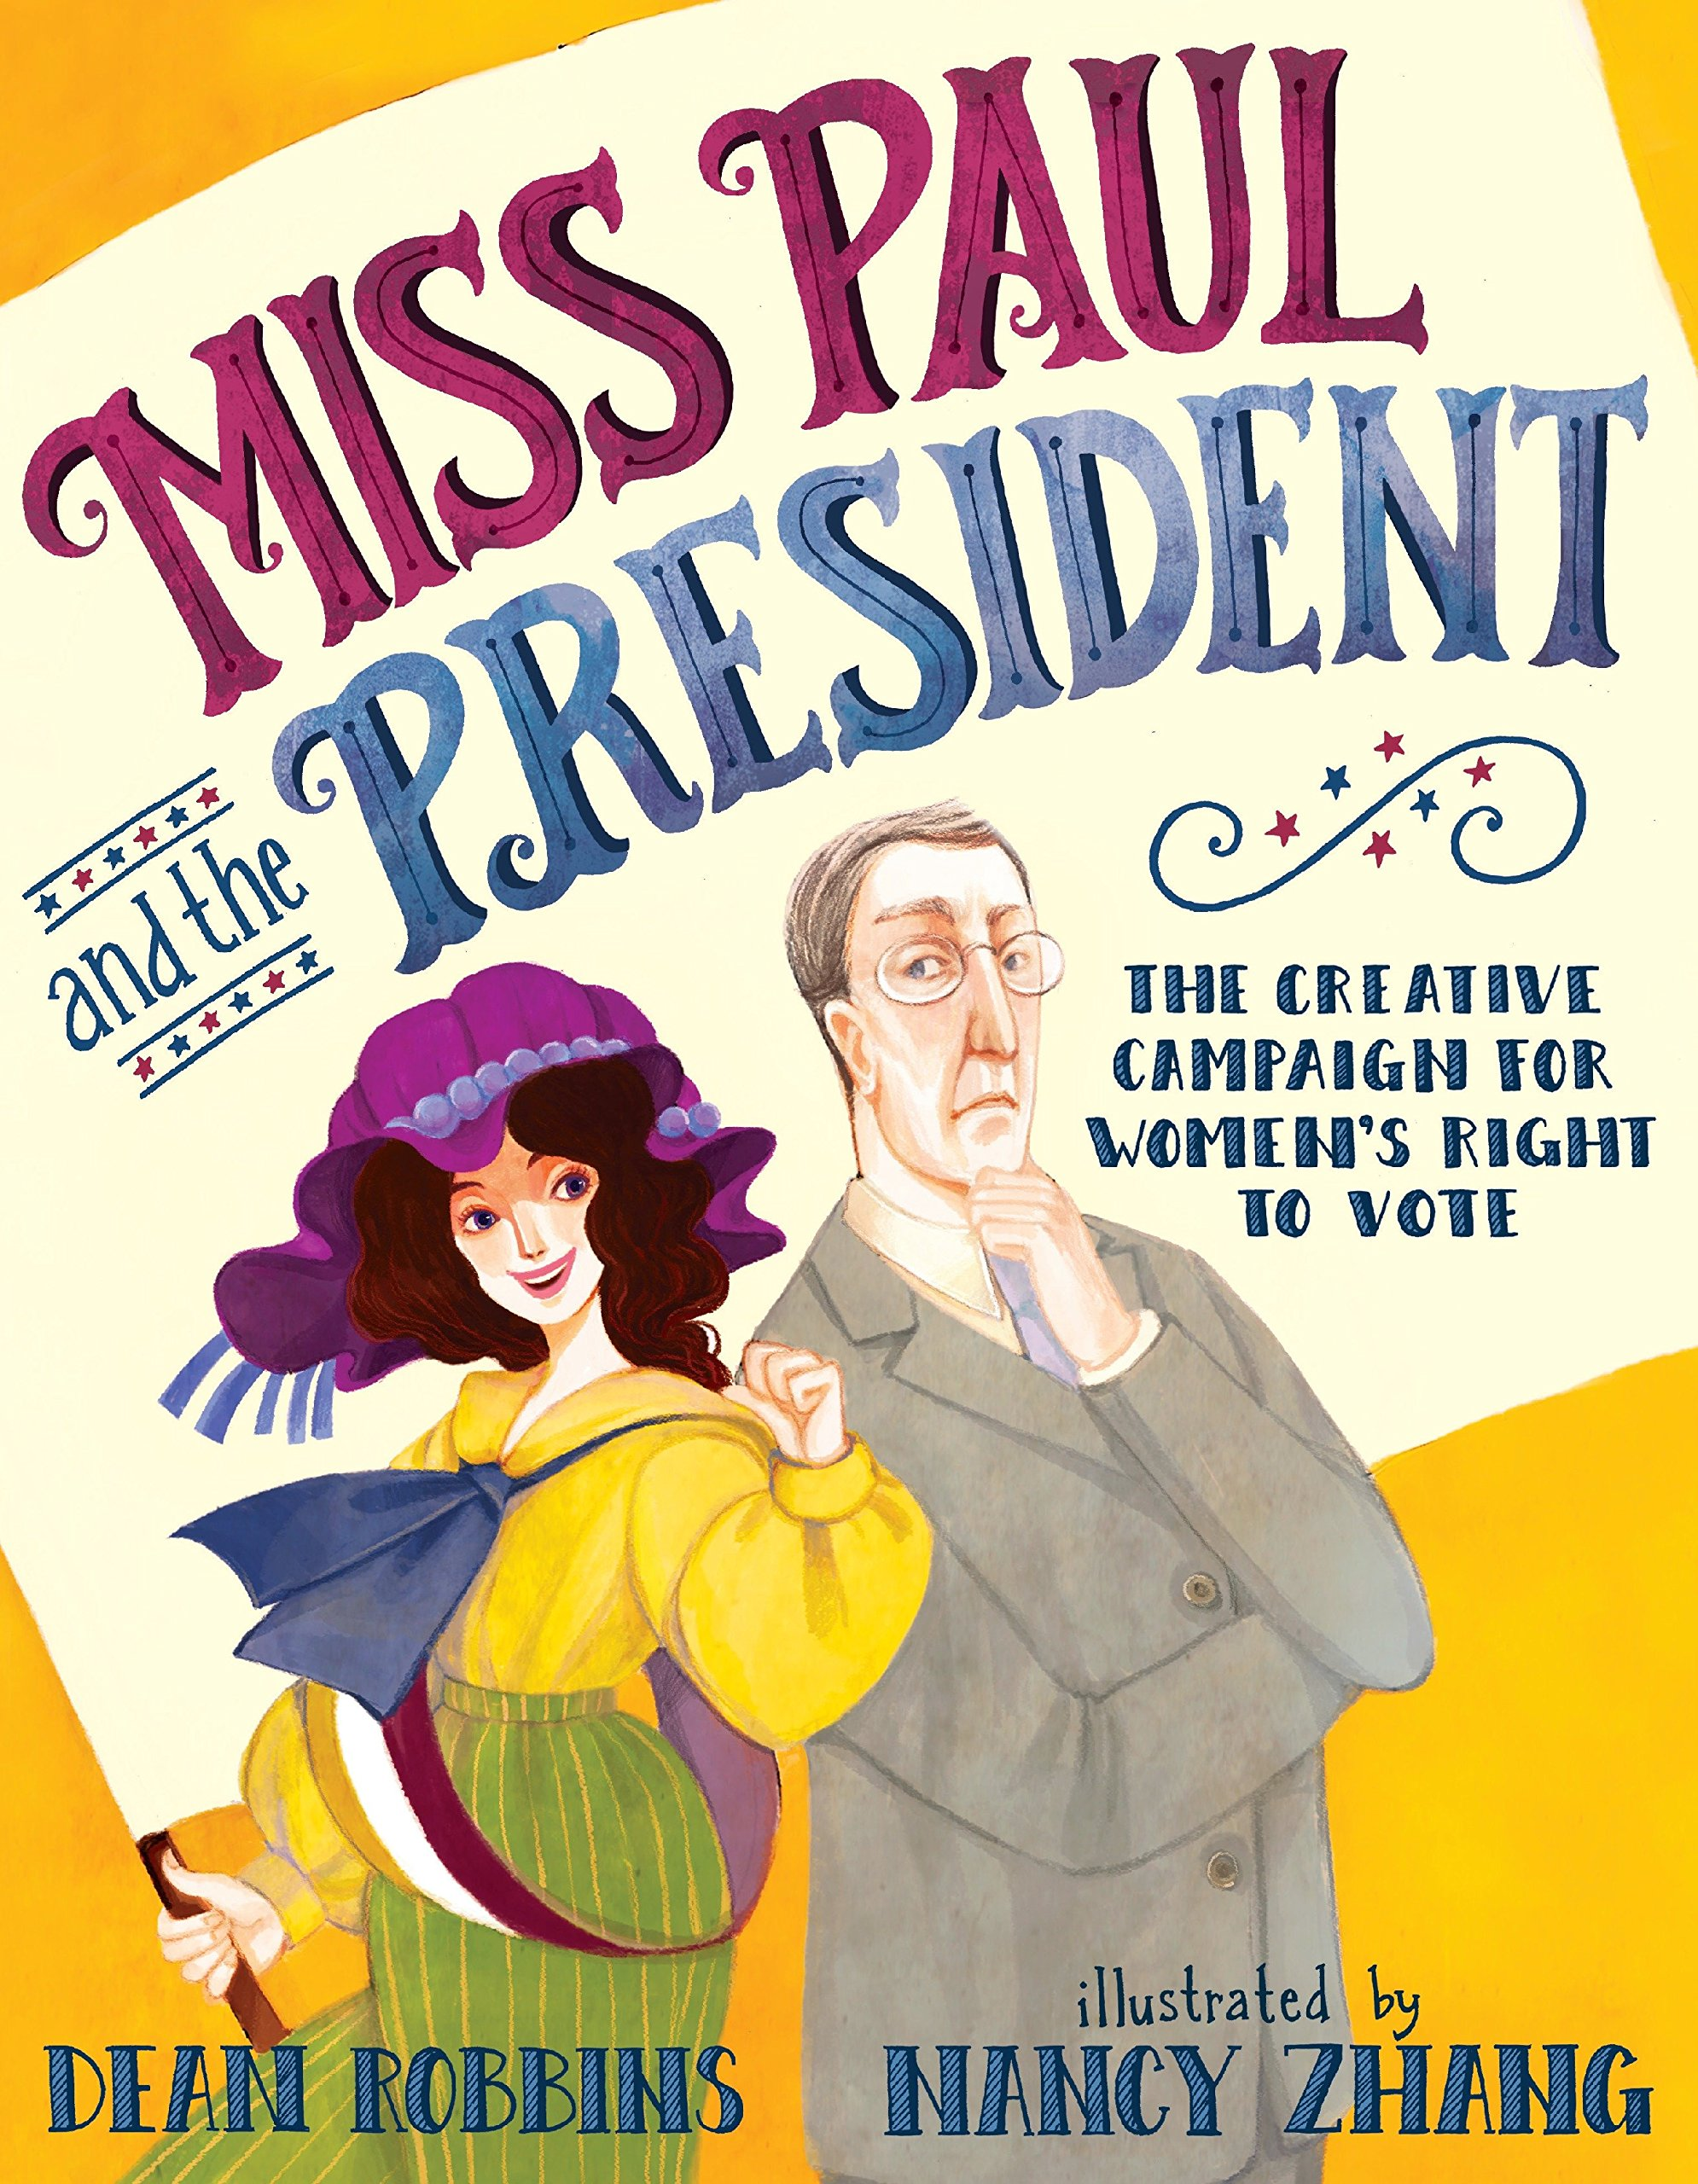 Miss Paul and the President: The Creative Campaign for Women's Right to Vote by Alfred A Knopf Books for Young Readers (Image #1)